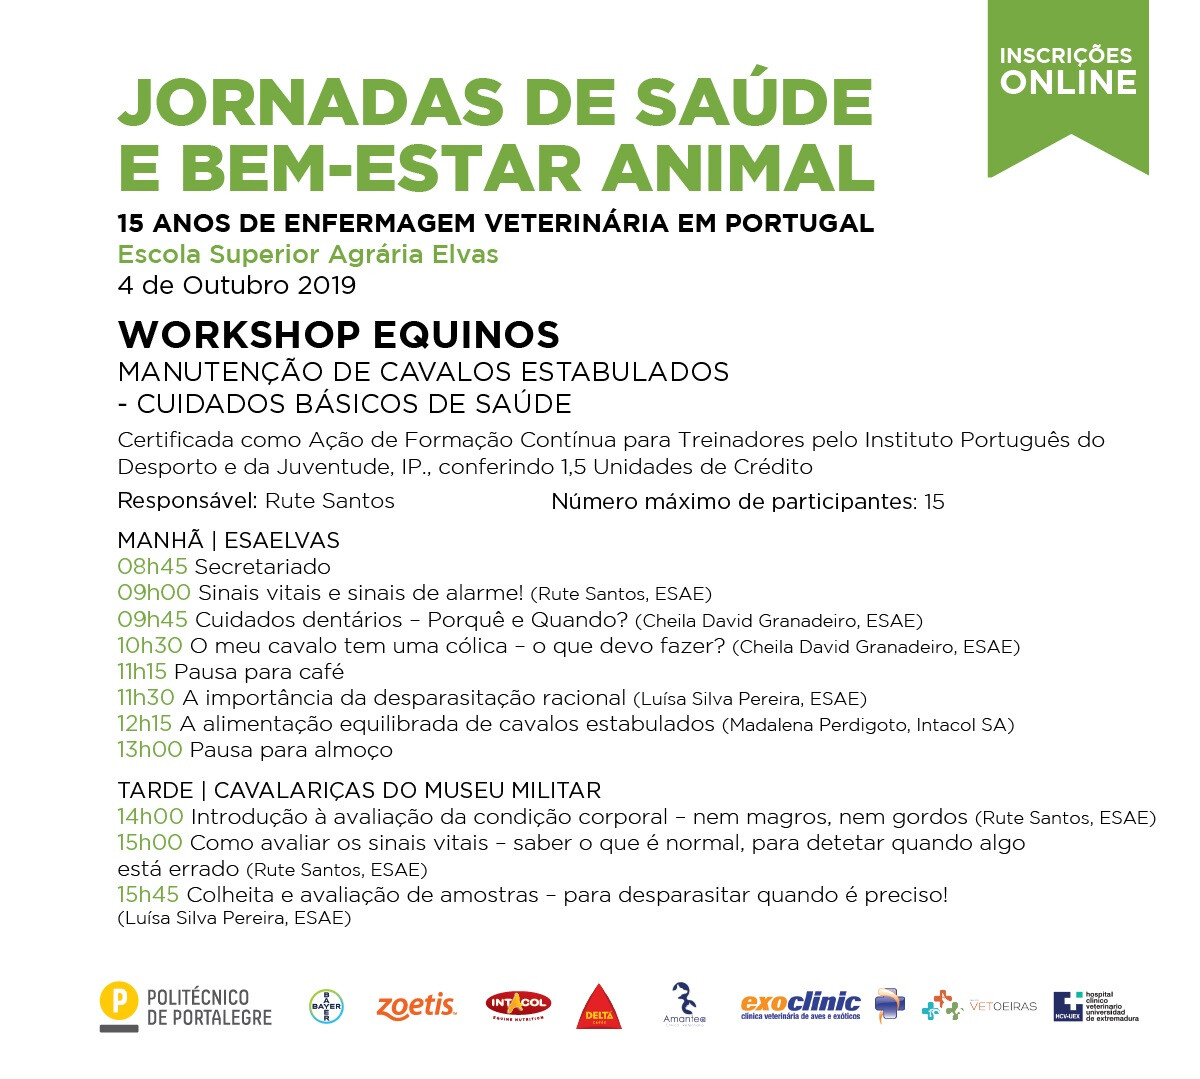 Workshop equinos